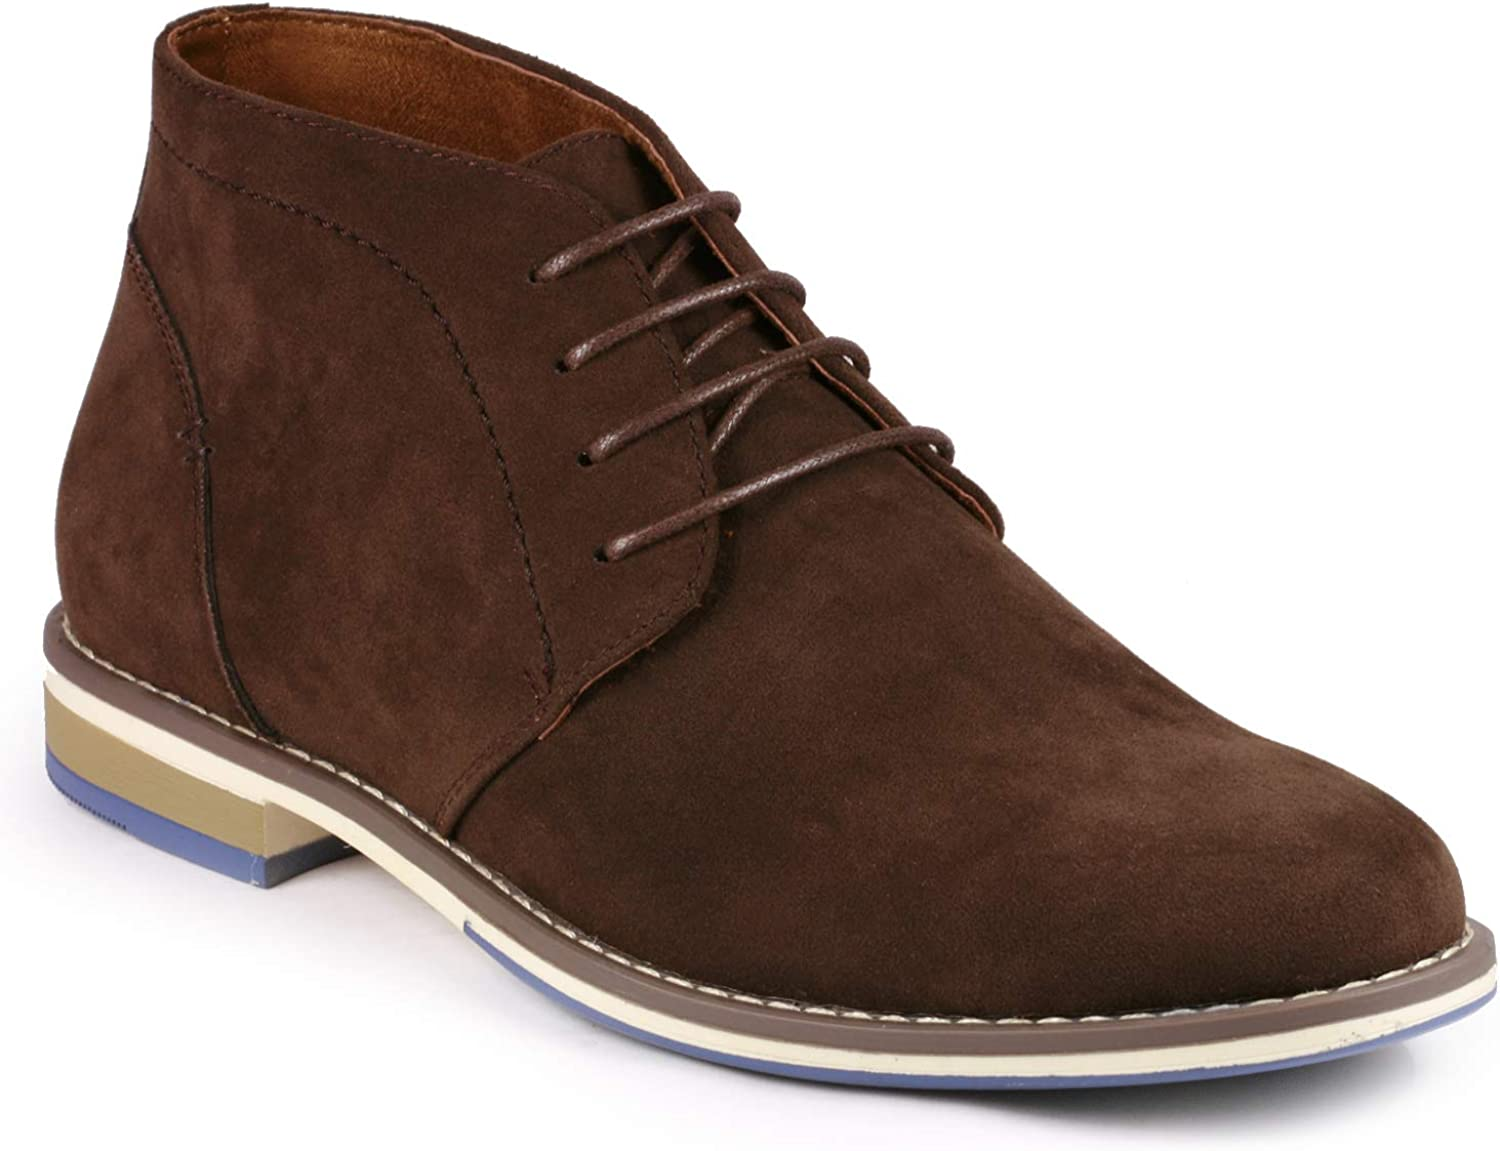 Metrocharm MC131 Mens Lace Up Casual Fashion Ankle Chukka Boot